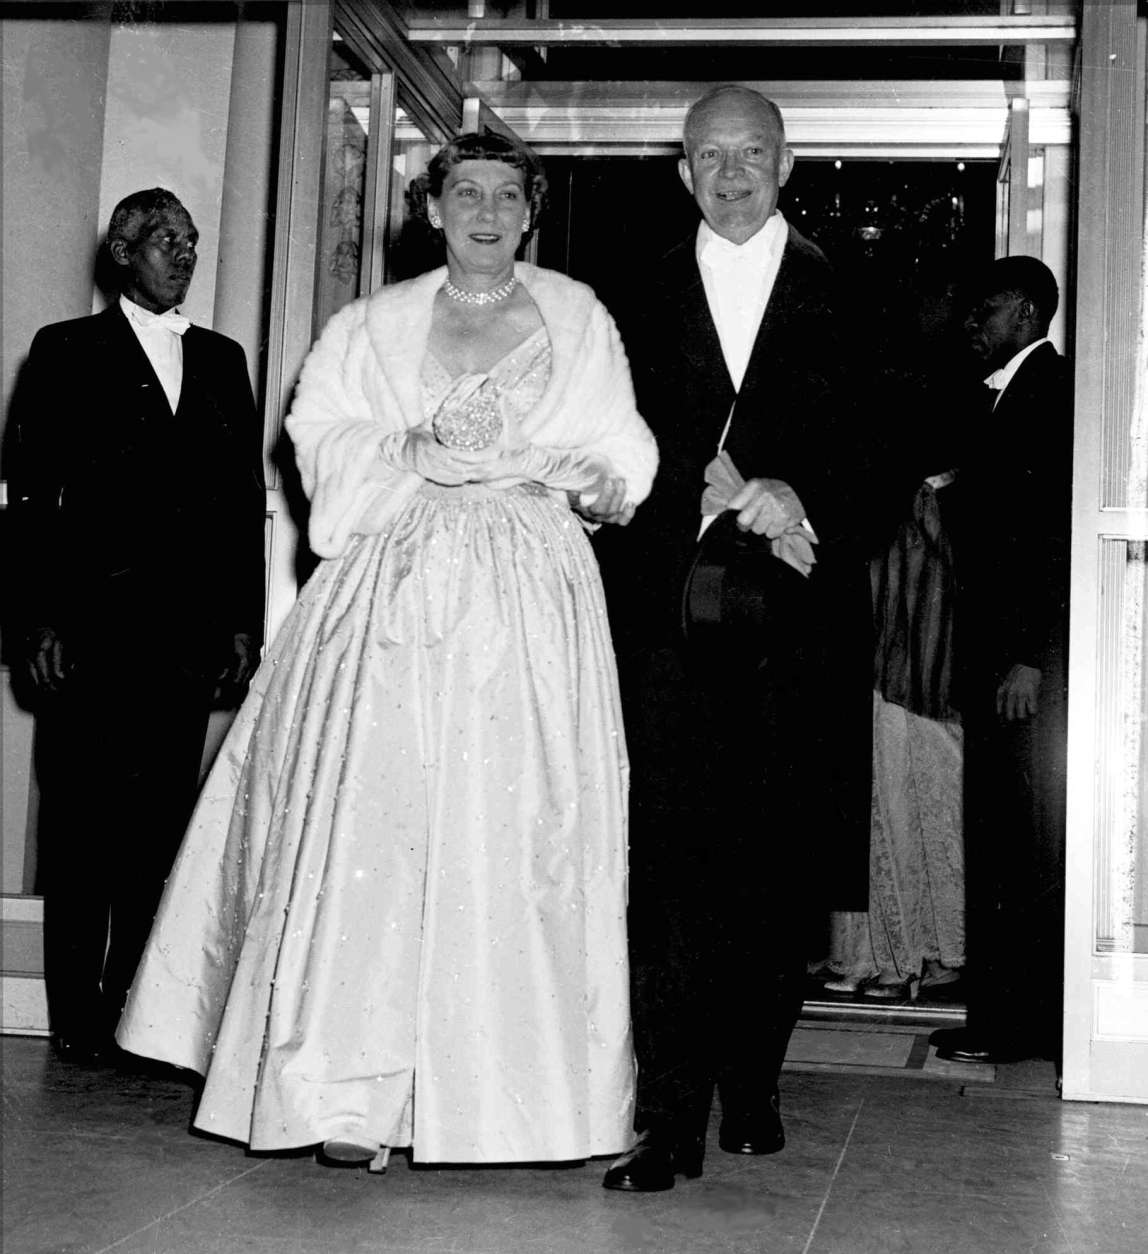 President Dwight Eisenhower holds the arm of his wife, first lady Mamie, as they leave the White House en route to inaugural balls in Washington January 20, 1953. (AP Photo)